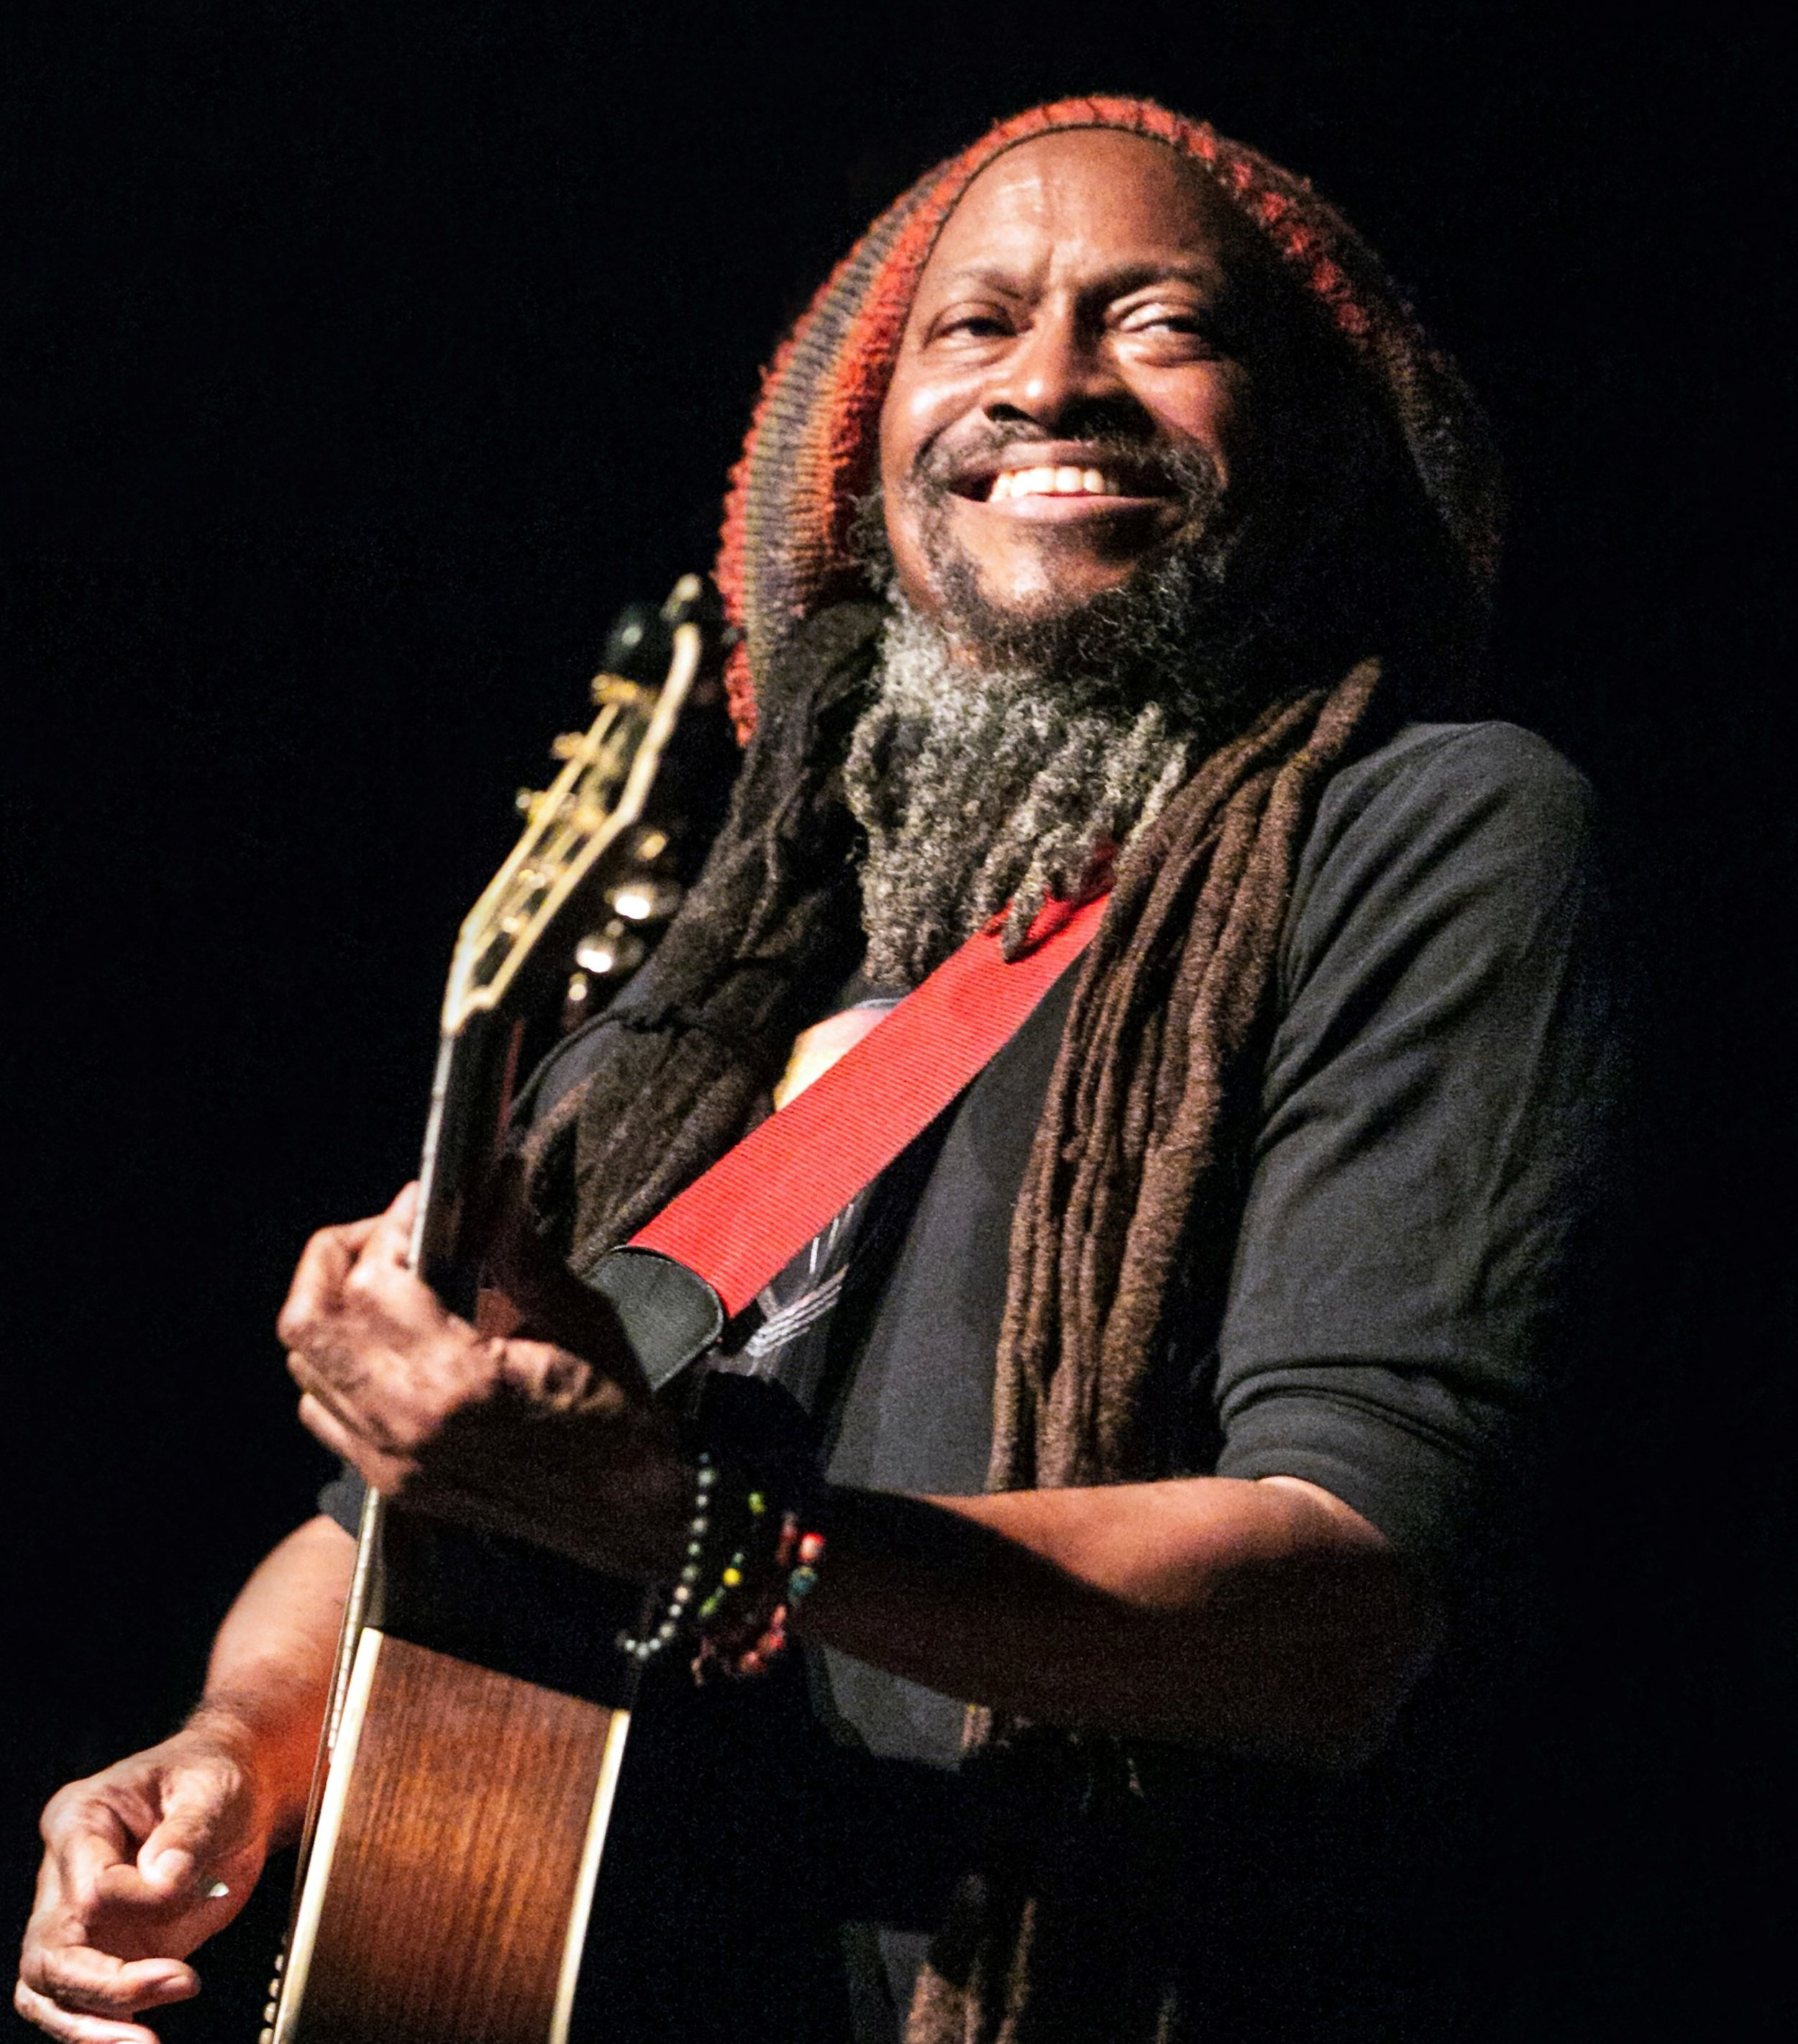 Walt Richardson & Friends - Walt Richardson and Friends will kick the night off with his solid mix of Folk, Rock, Reggae and R&B. Walt Richardson is an honored member of the Arizona's Music and Entertainment Hall of Fame and first inductee into Tempe's Walk of Fame.He is a celebrated music veteran and singer-songwriter in the greater Phoenix area. His contributions to the music community and cultural have been recognized with numerous awards. With his passion for live performances and a belief that music is a means of healing for humanity, his local fan base love to hear him sing and play his guitar with his band mates.